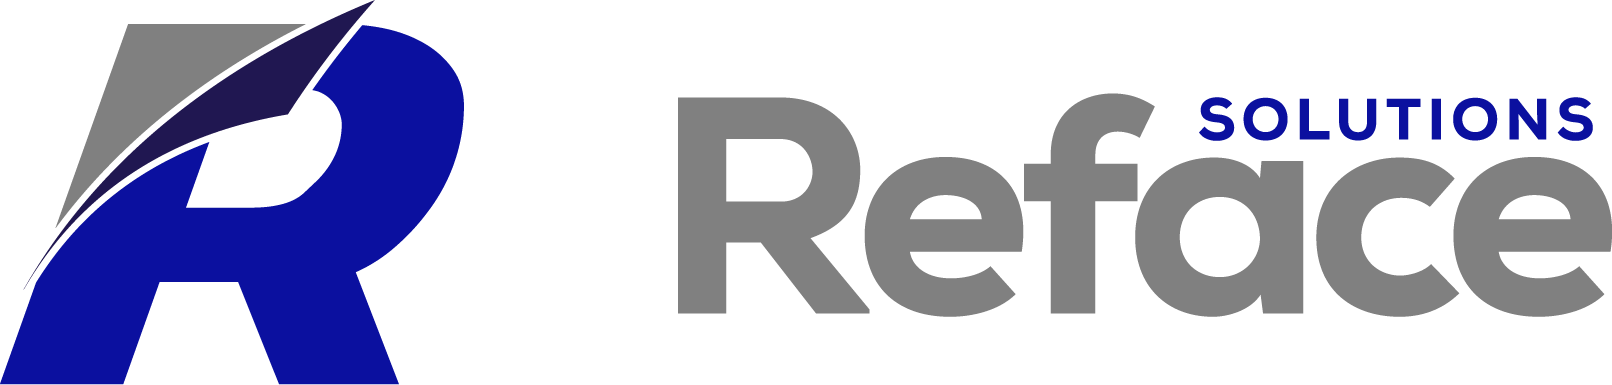 Reface Solutions